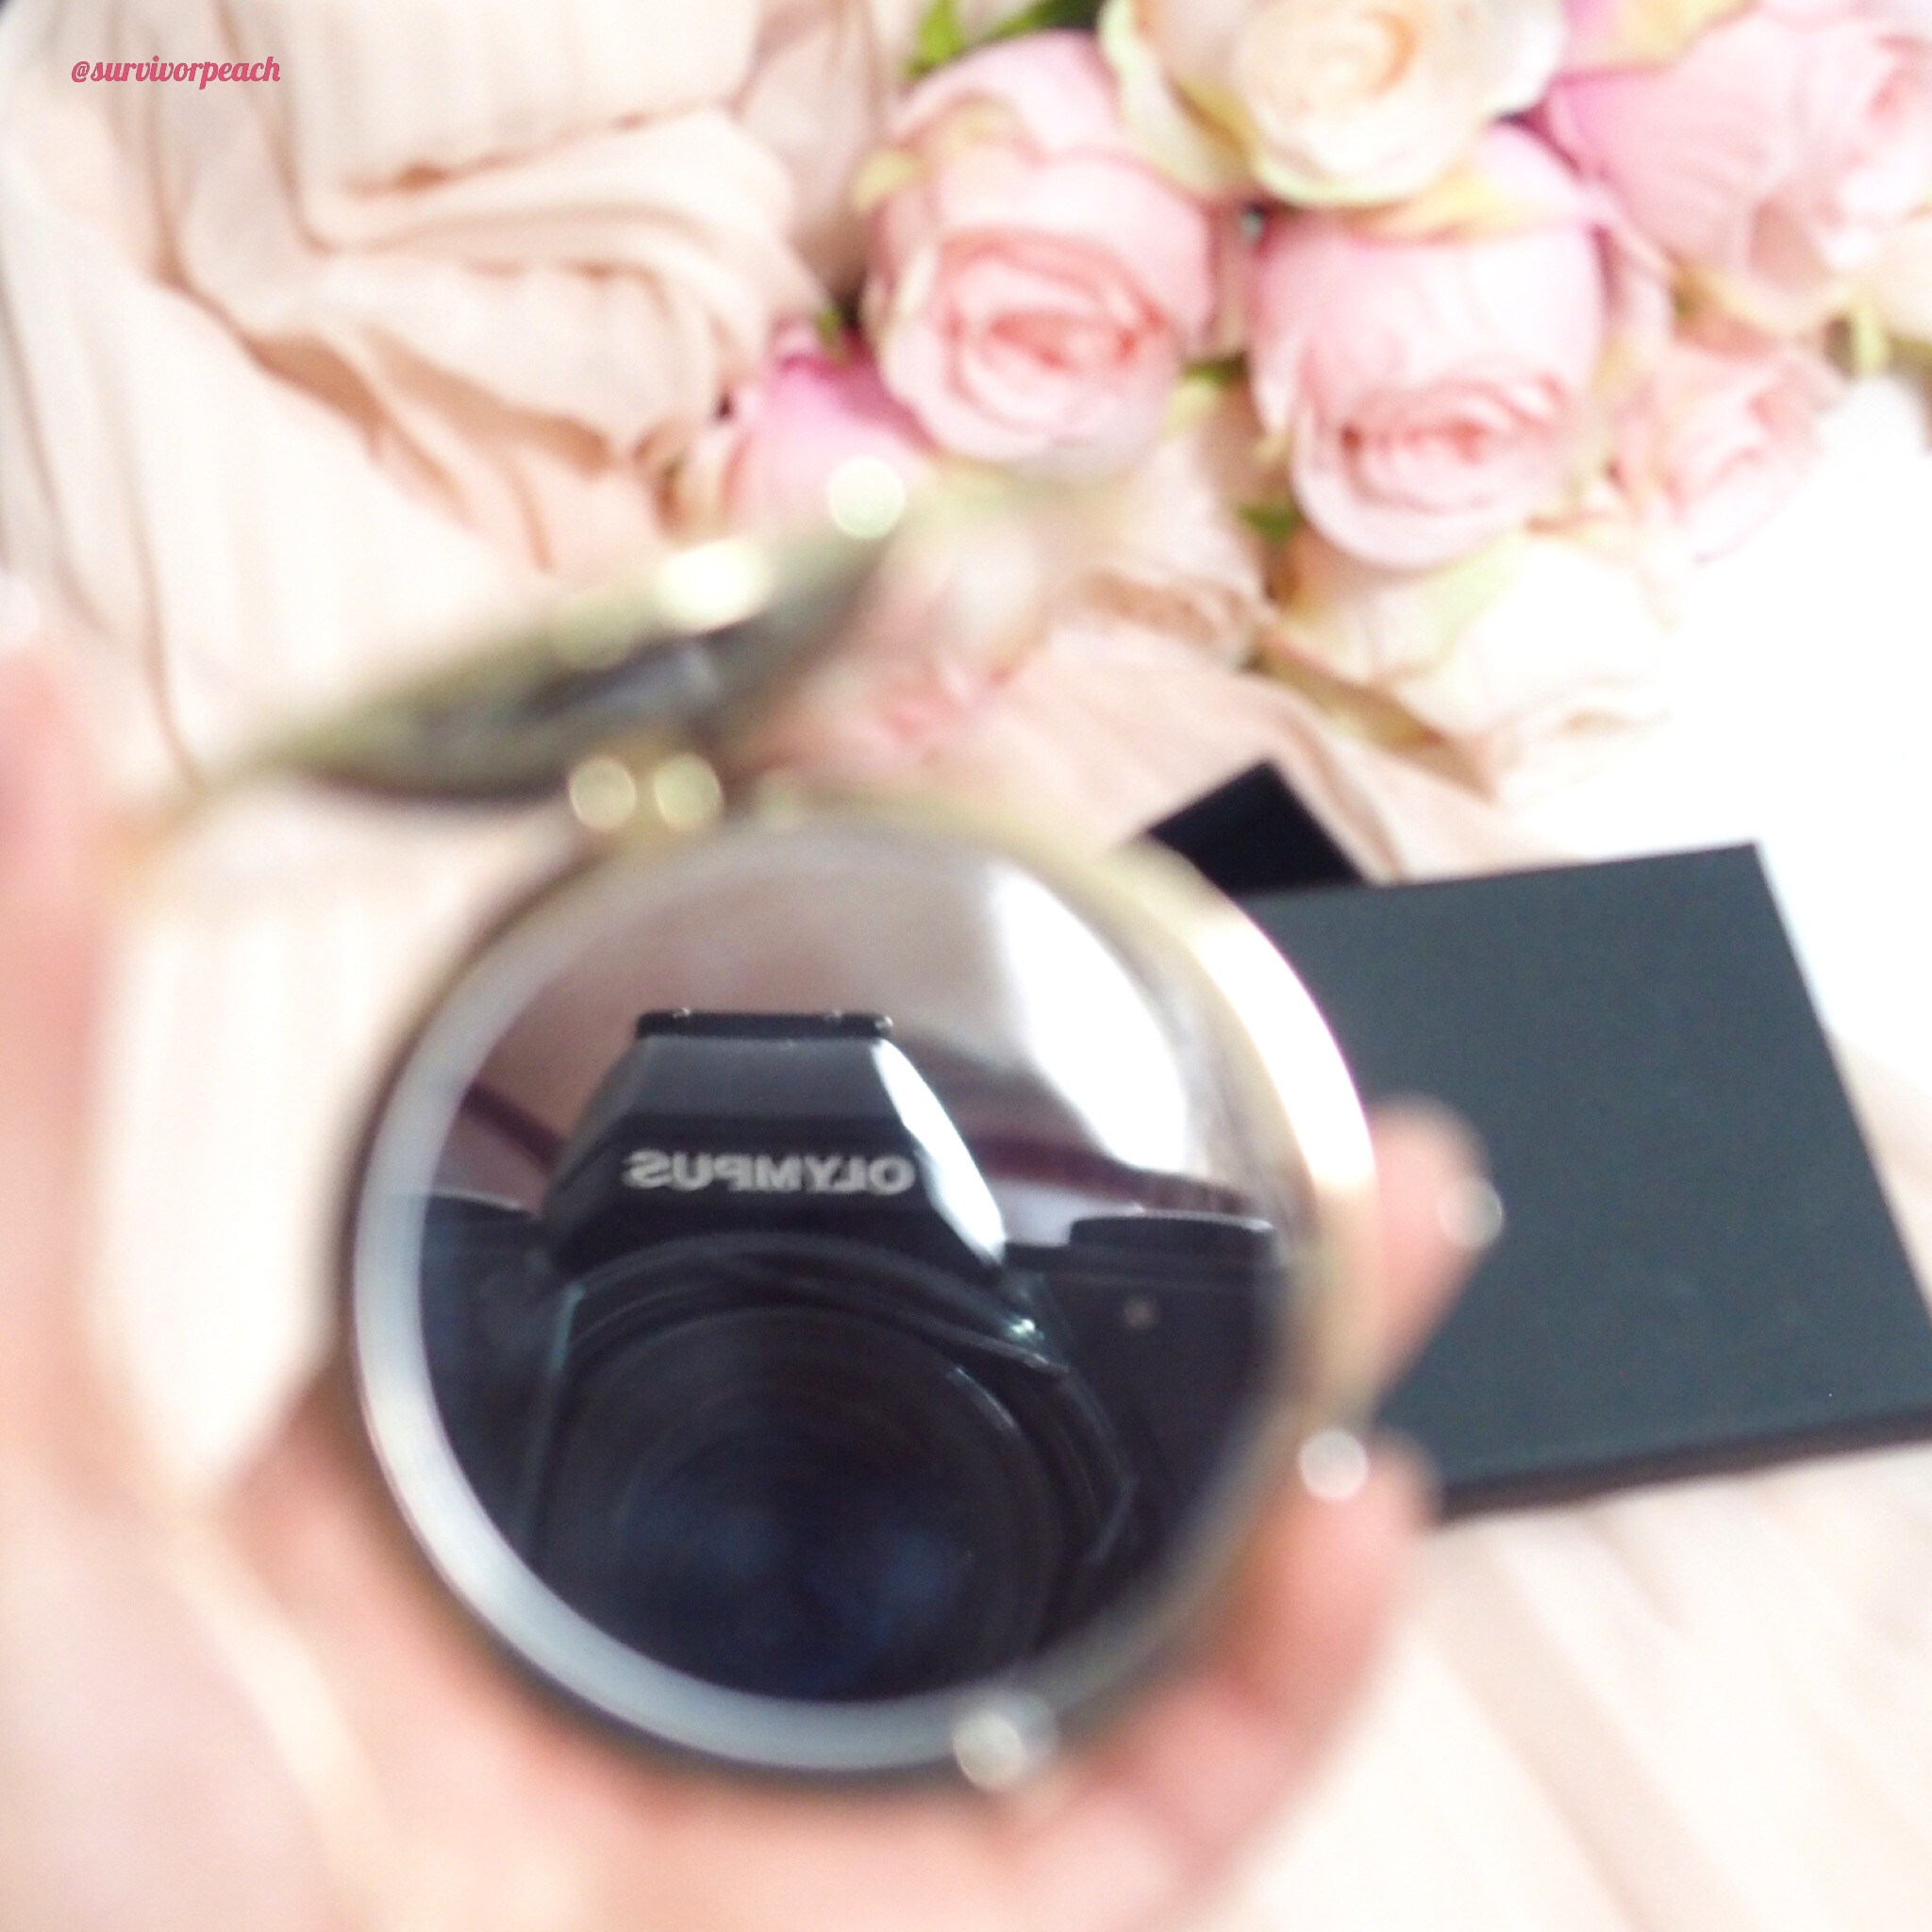 Free compact mirror from Gucci